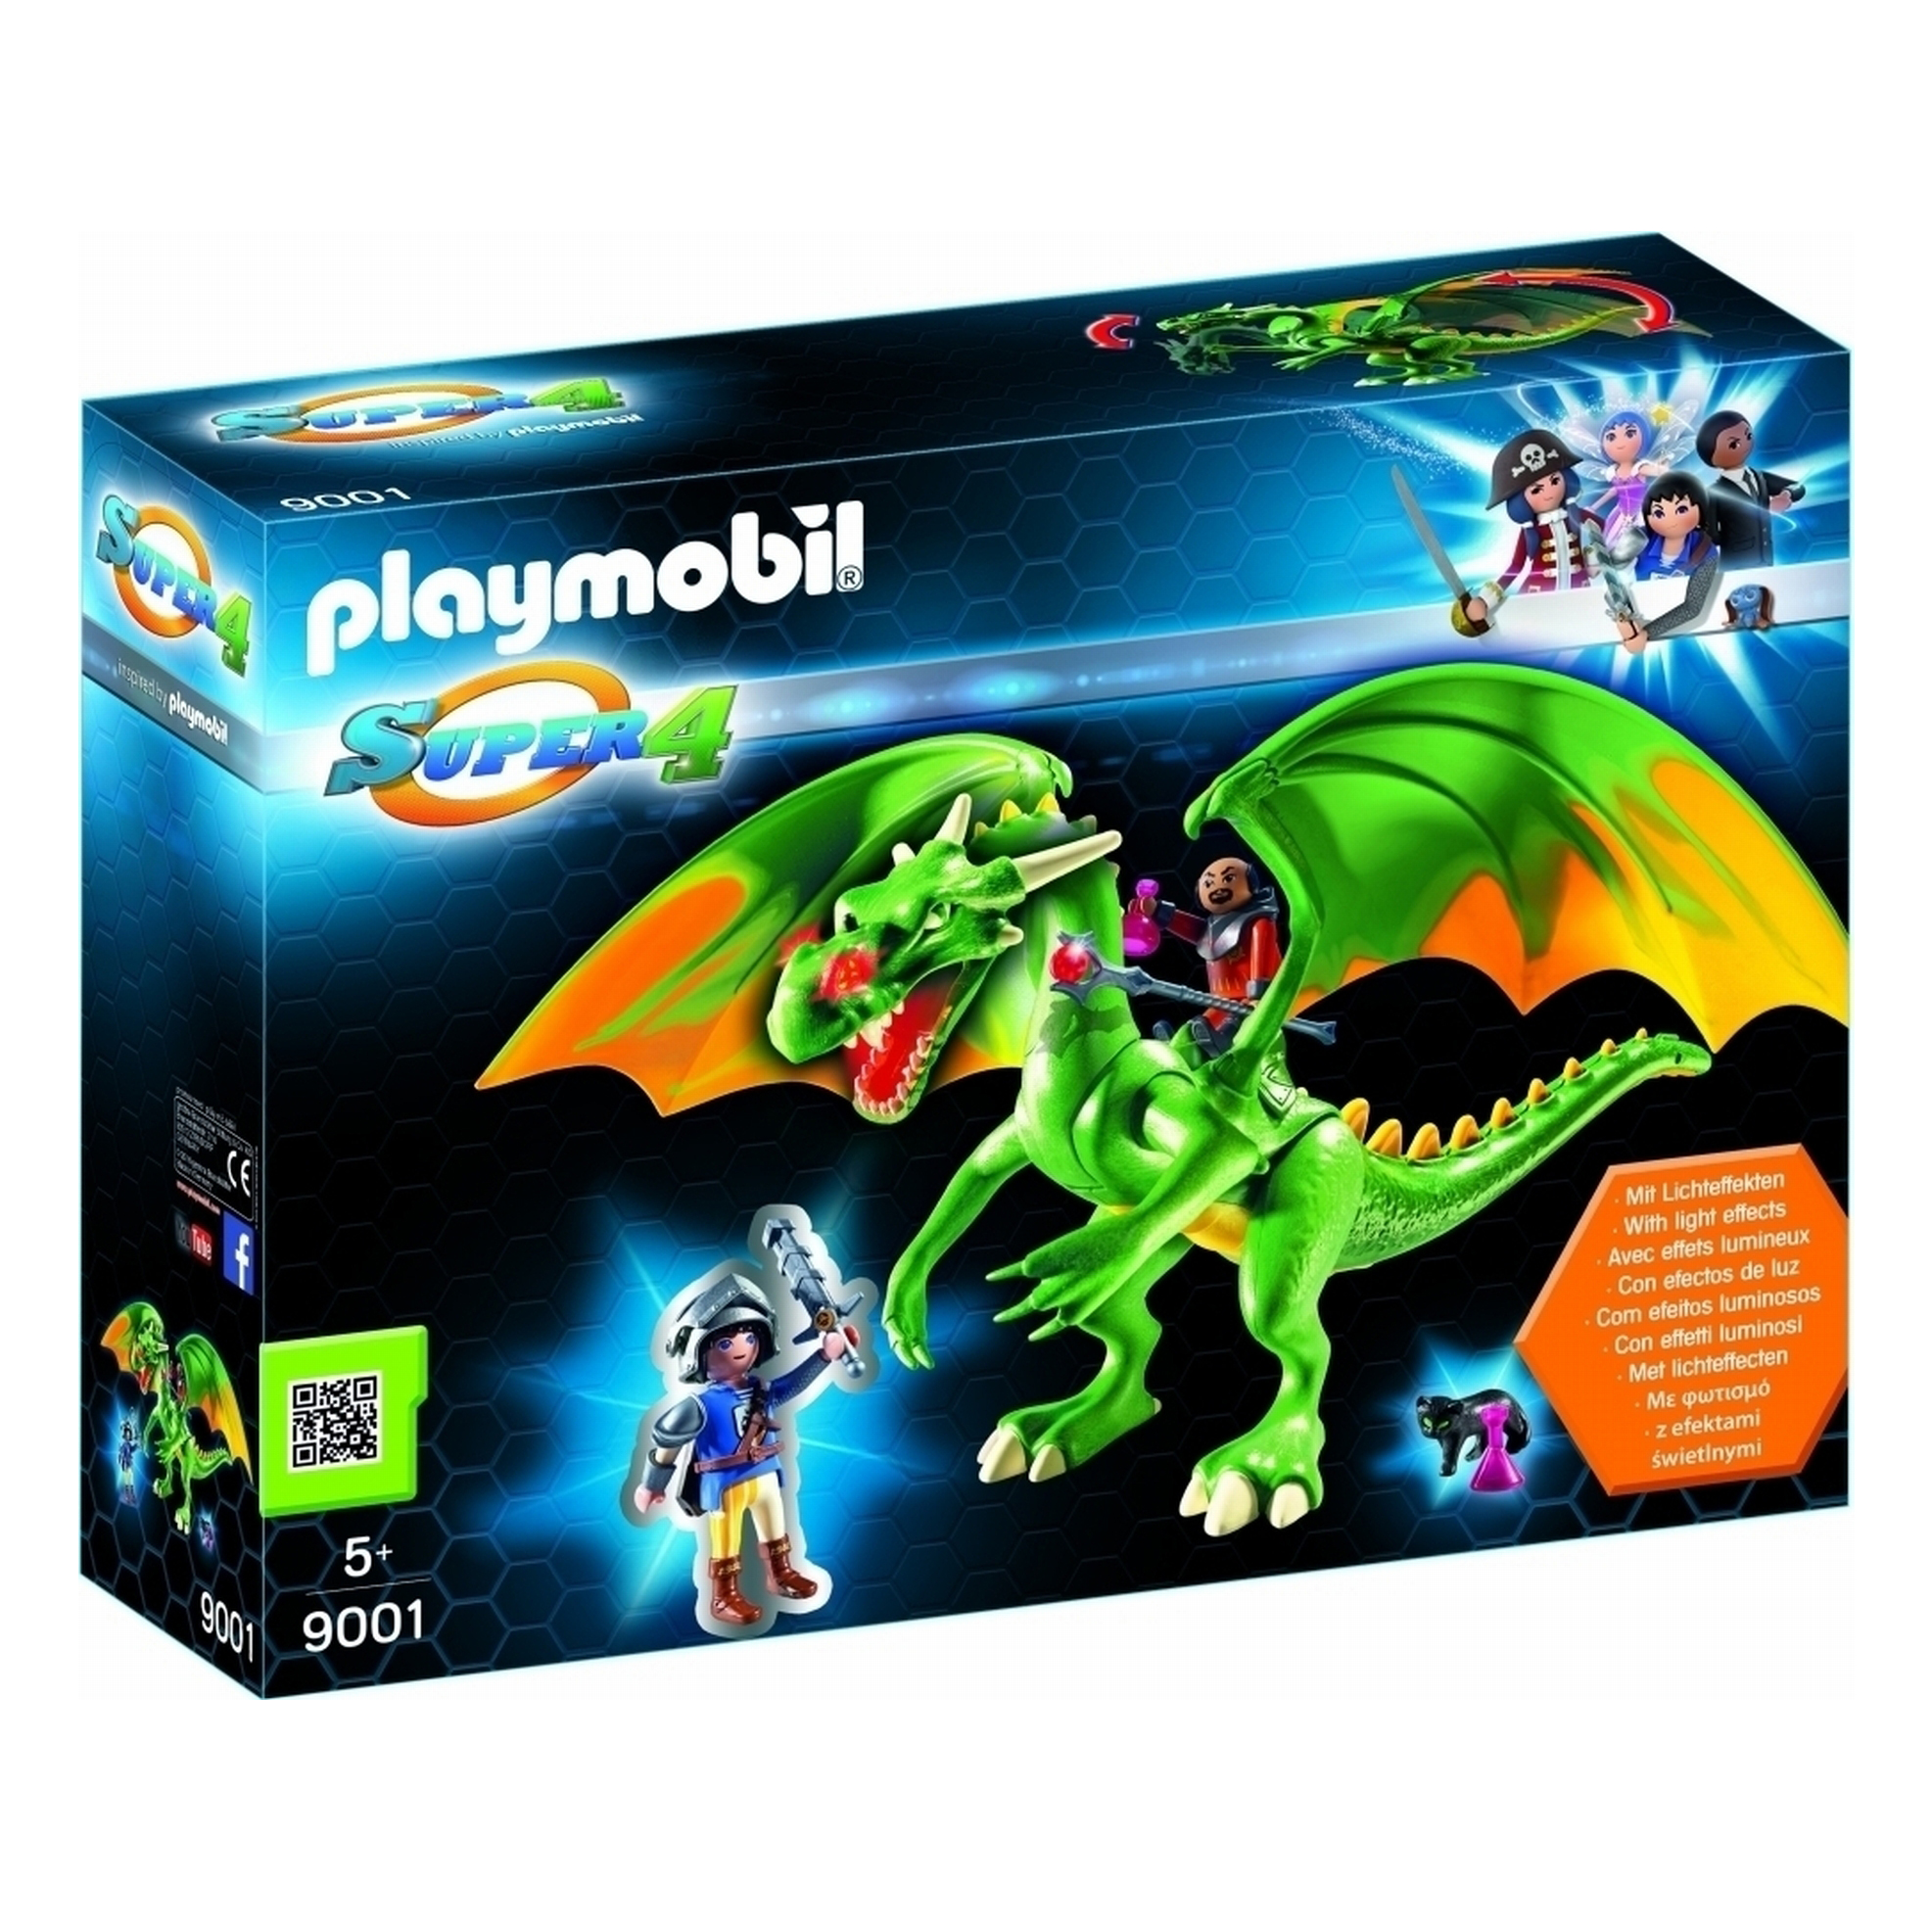 Playmobil Super 4 Kingsland Dragon LED Fire Effects 9001